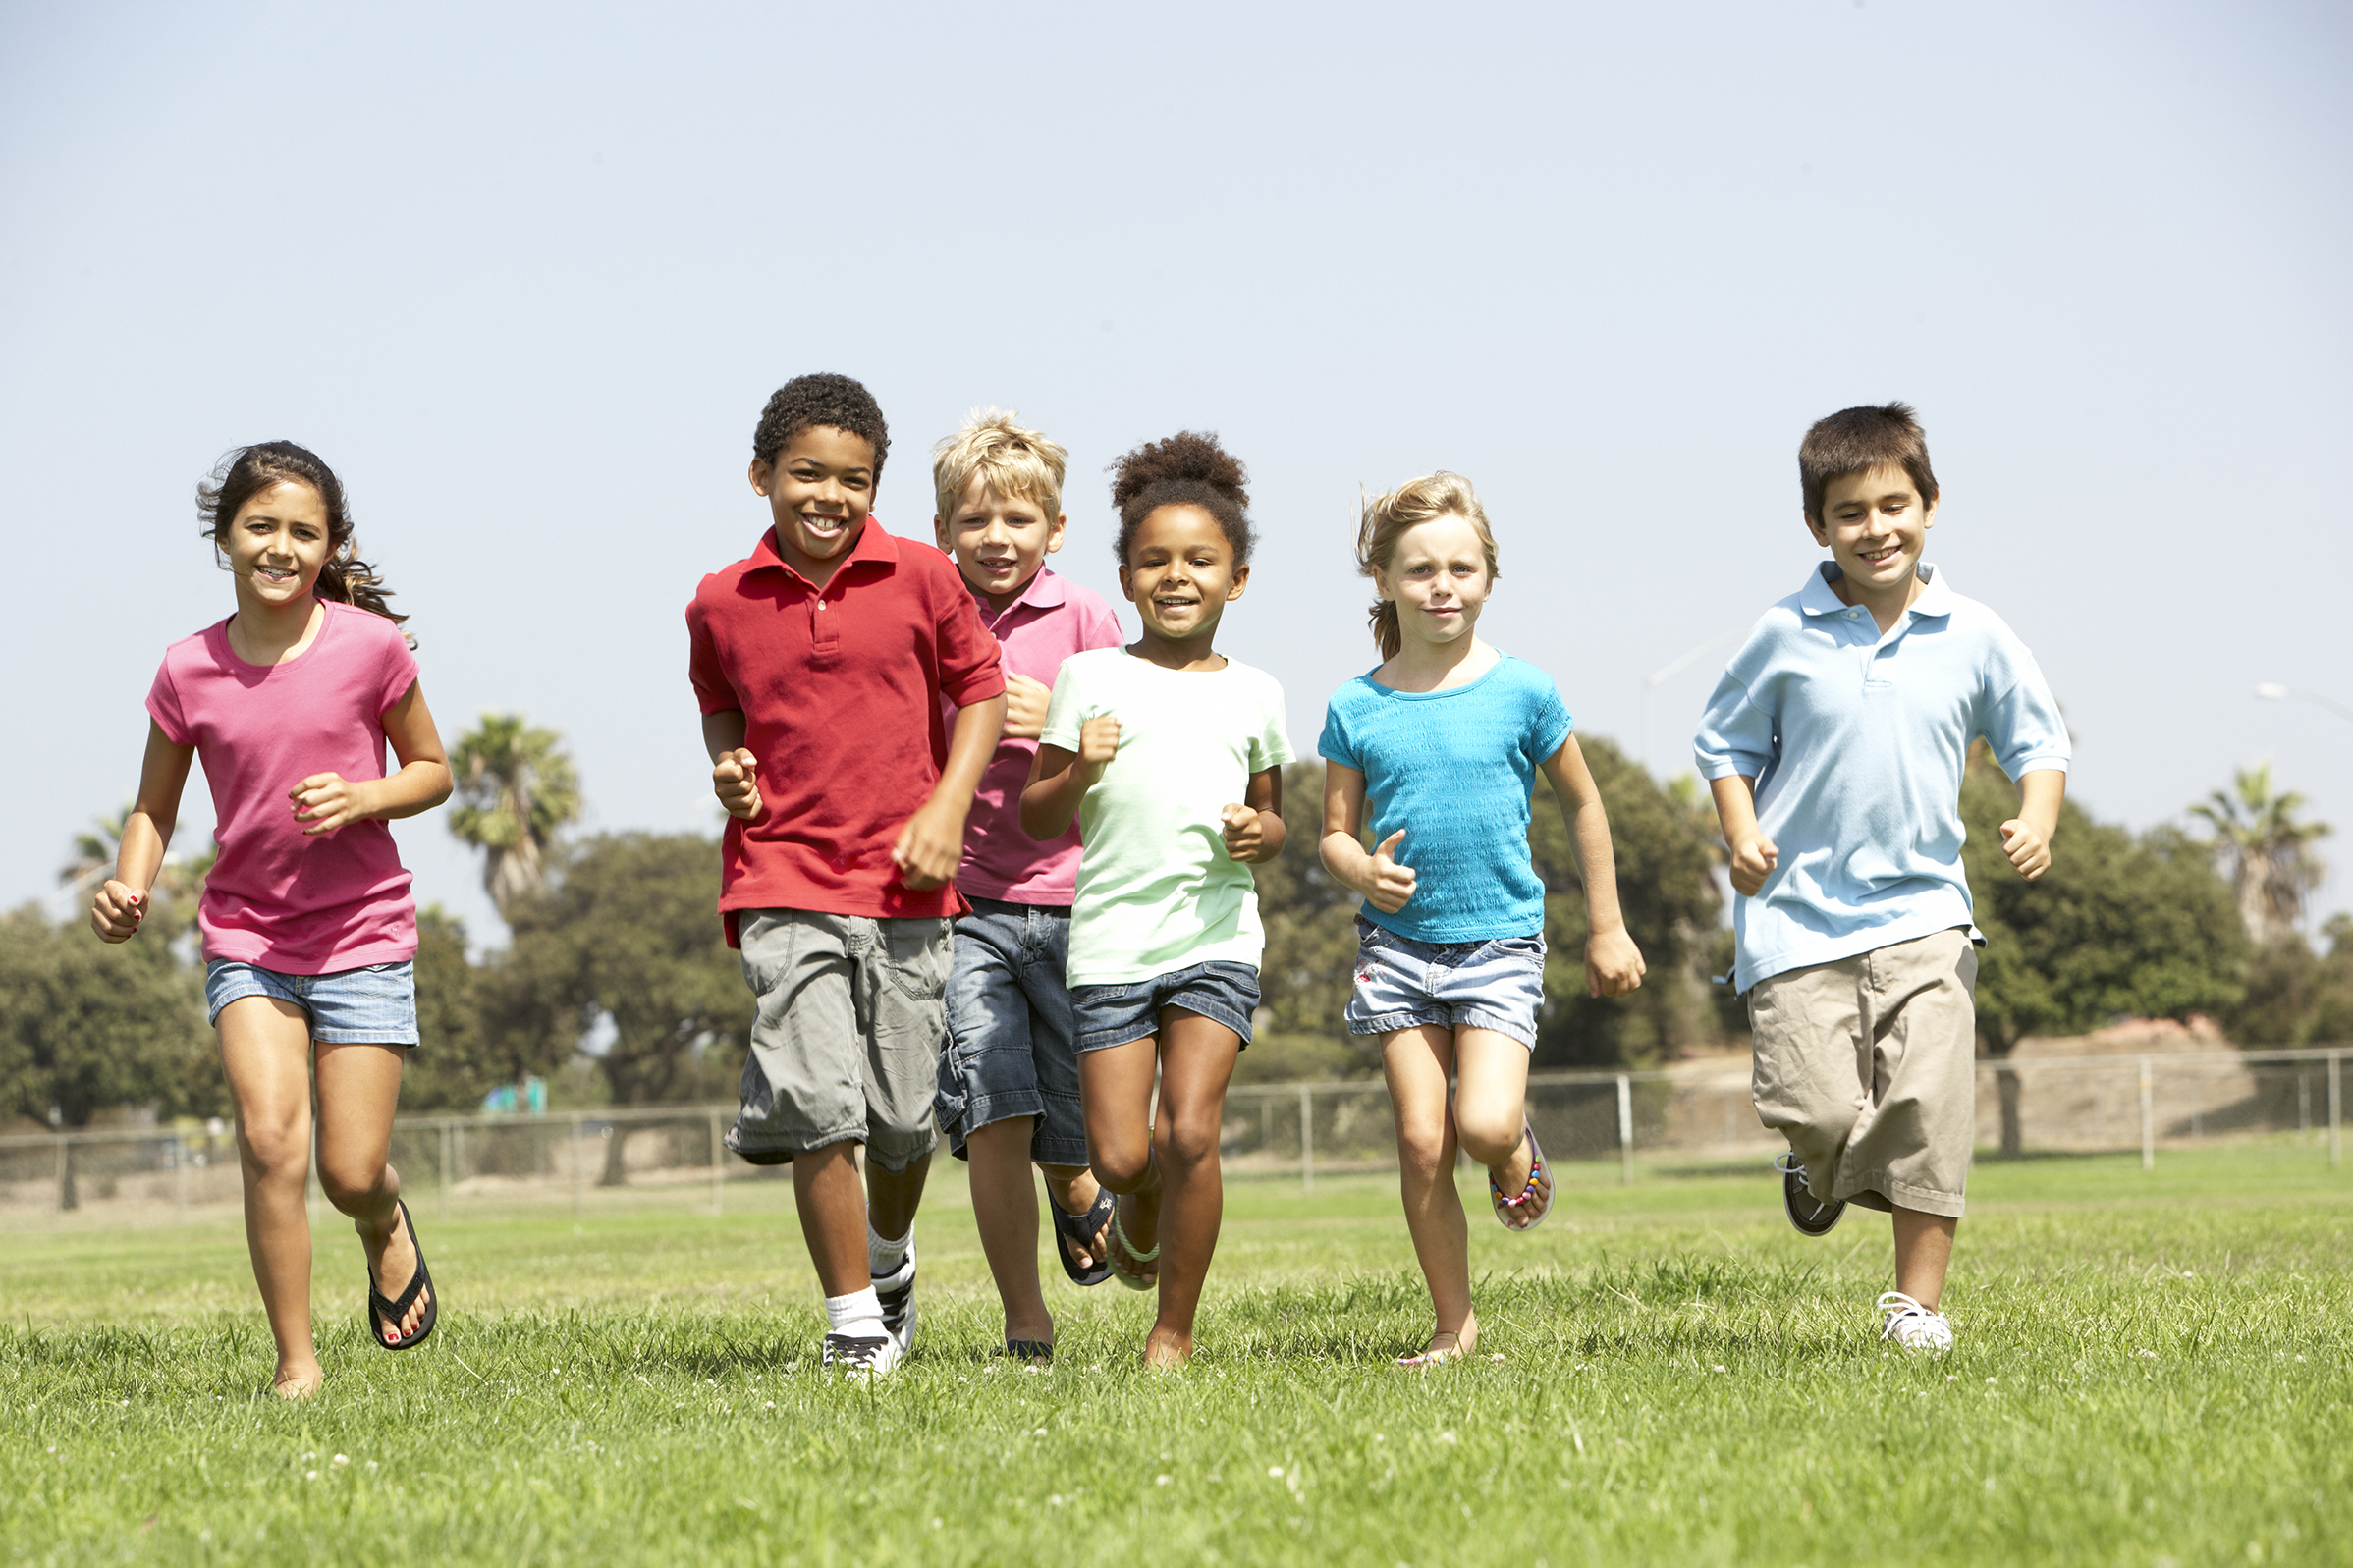 A group of children running in a field